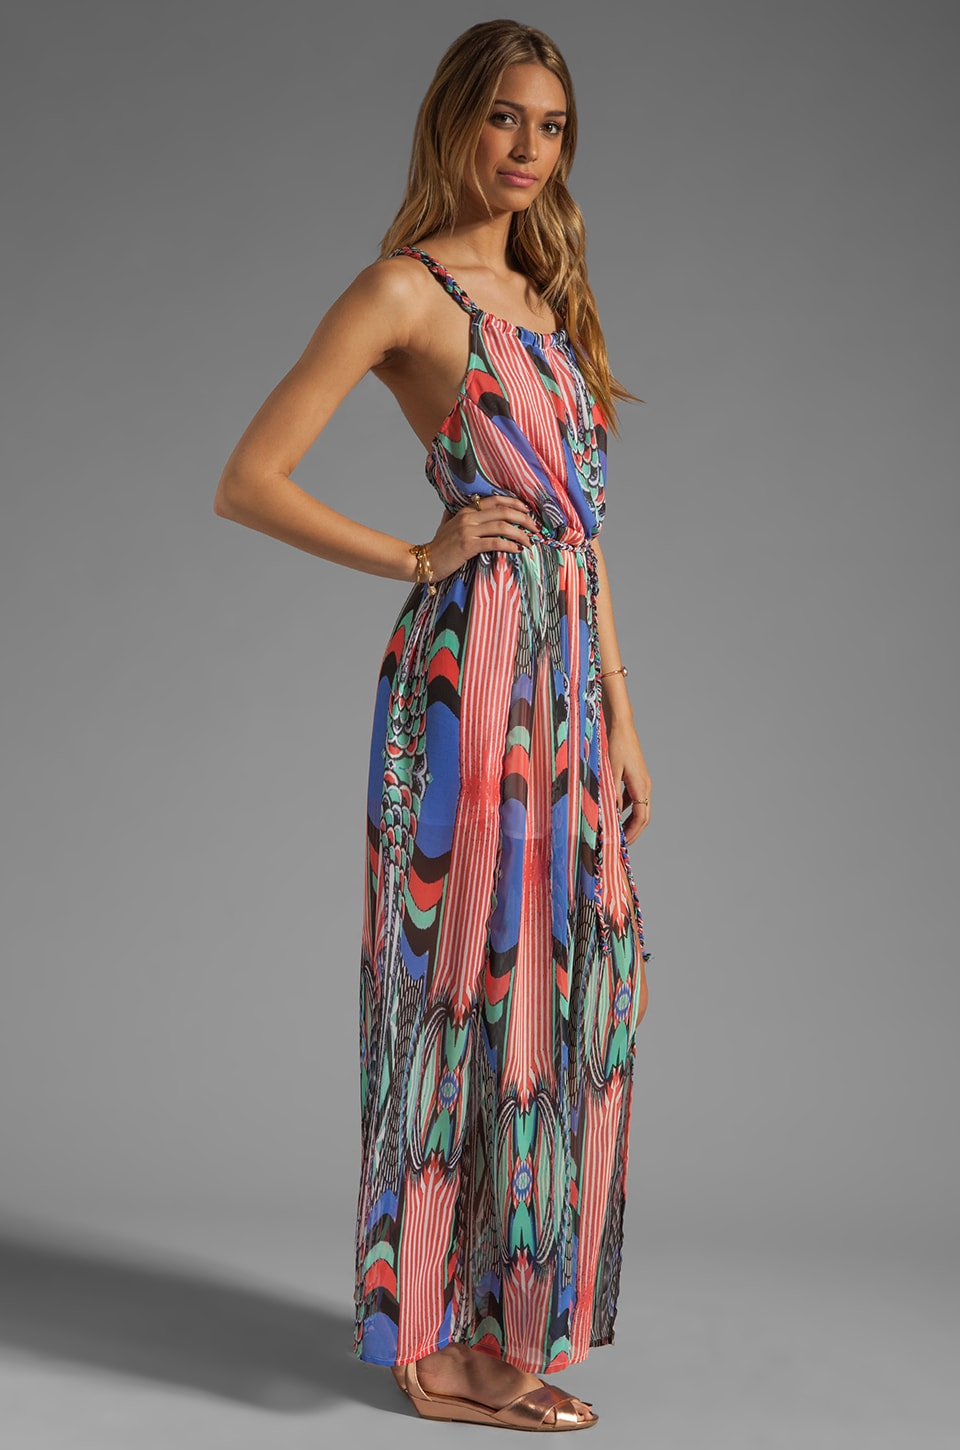 L*SPACE Inca Maxi Dress in Multi